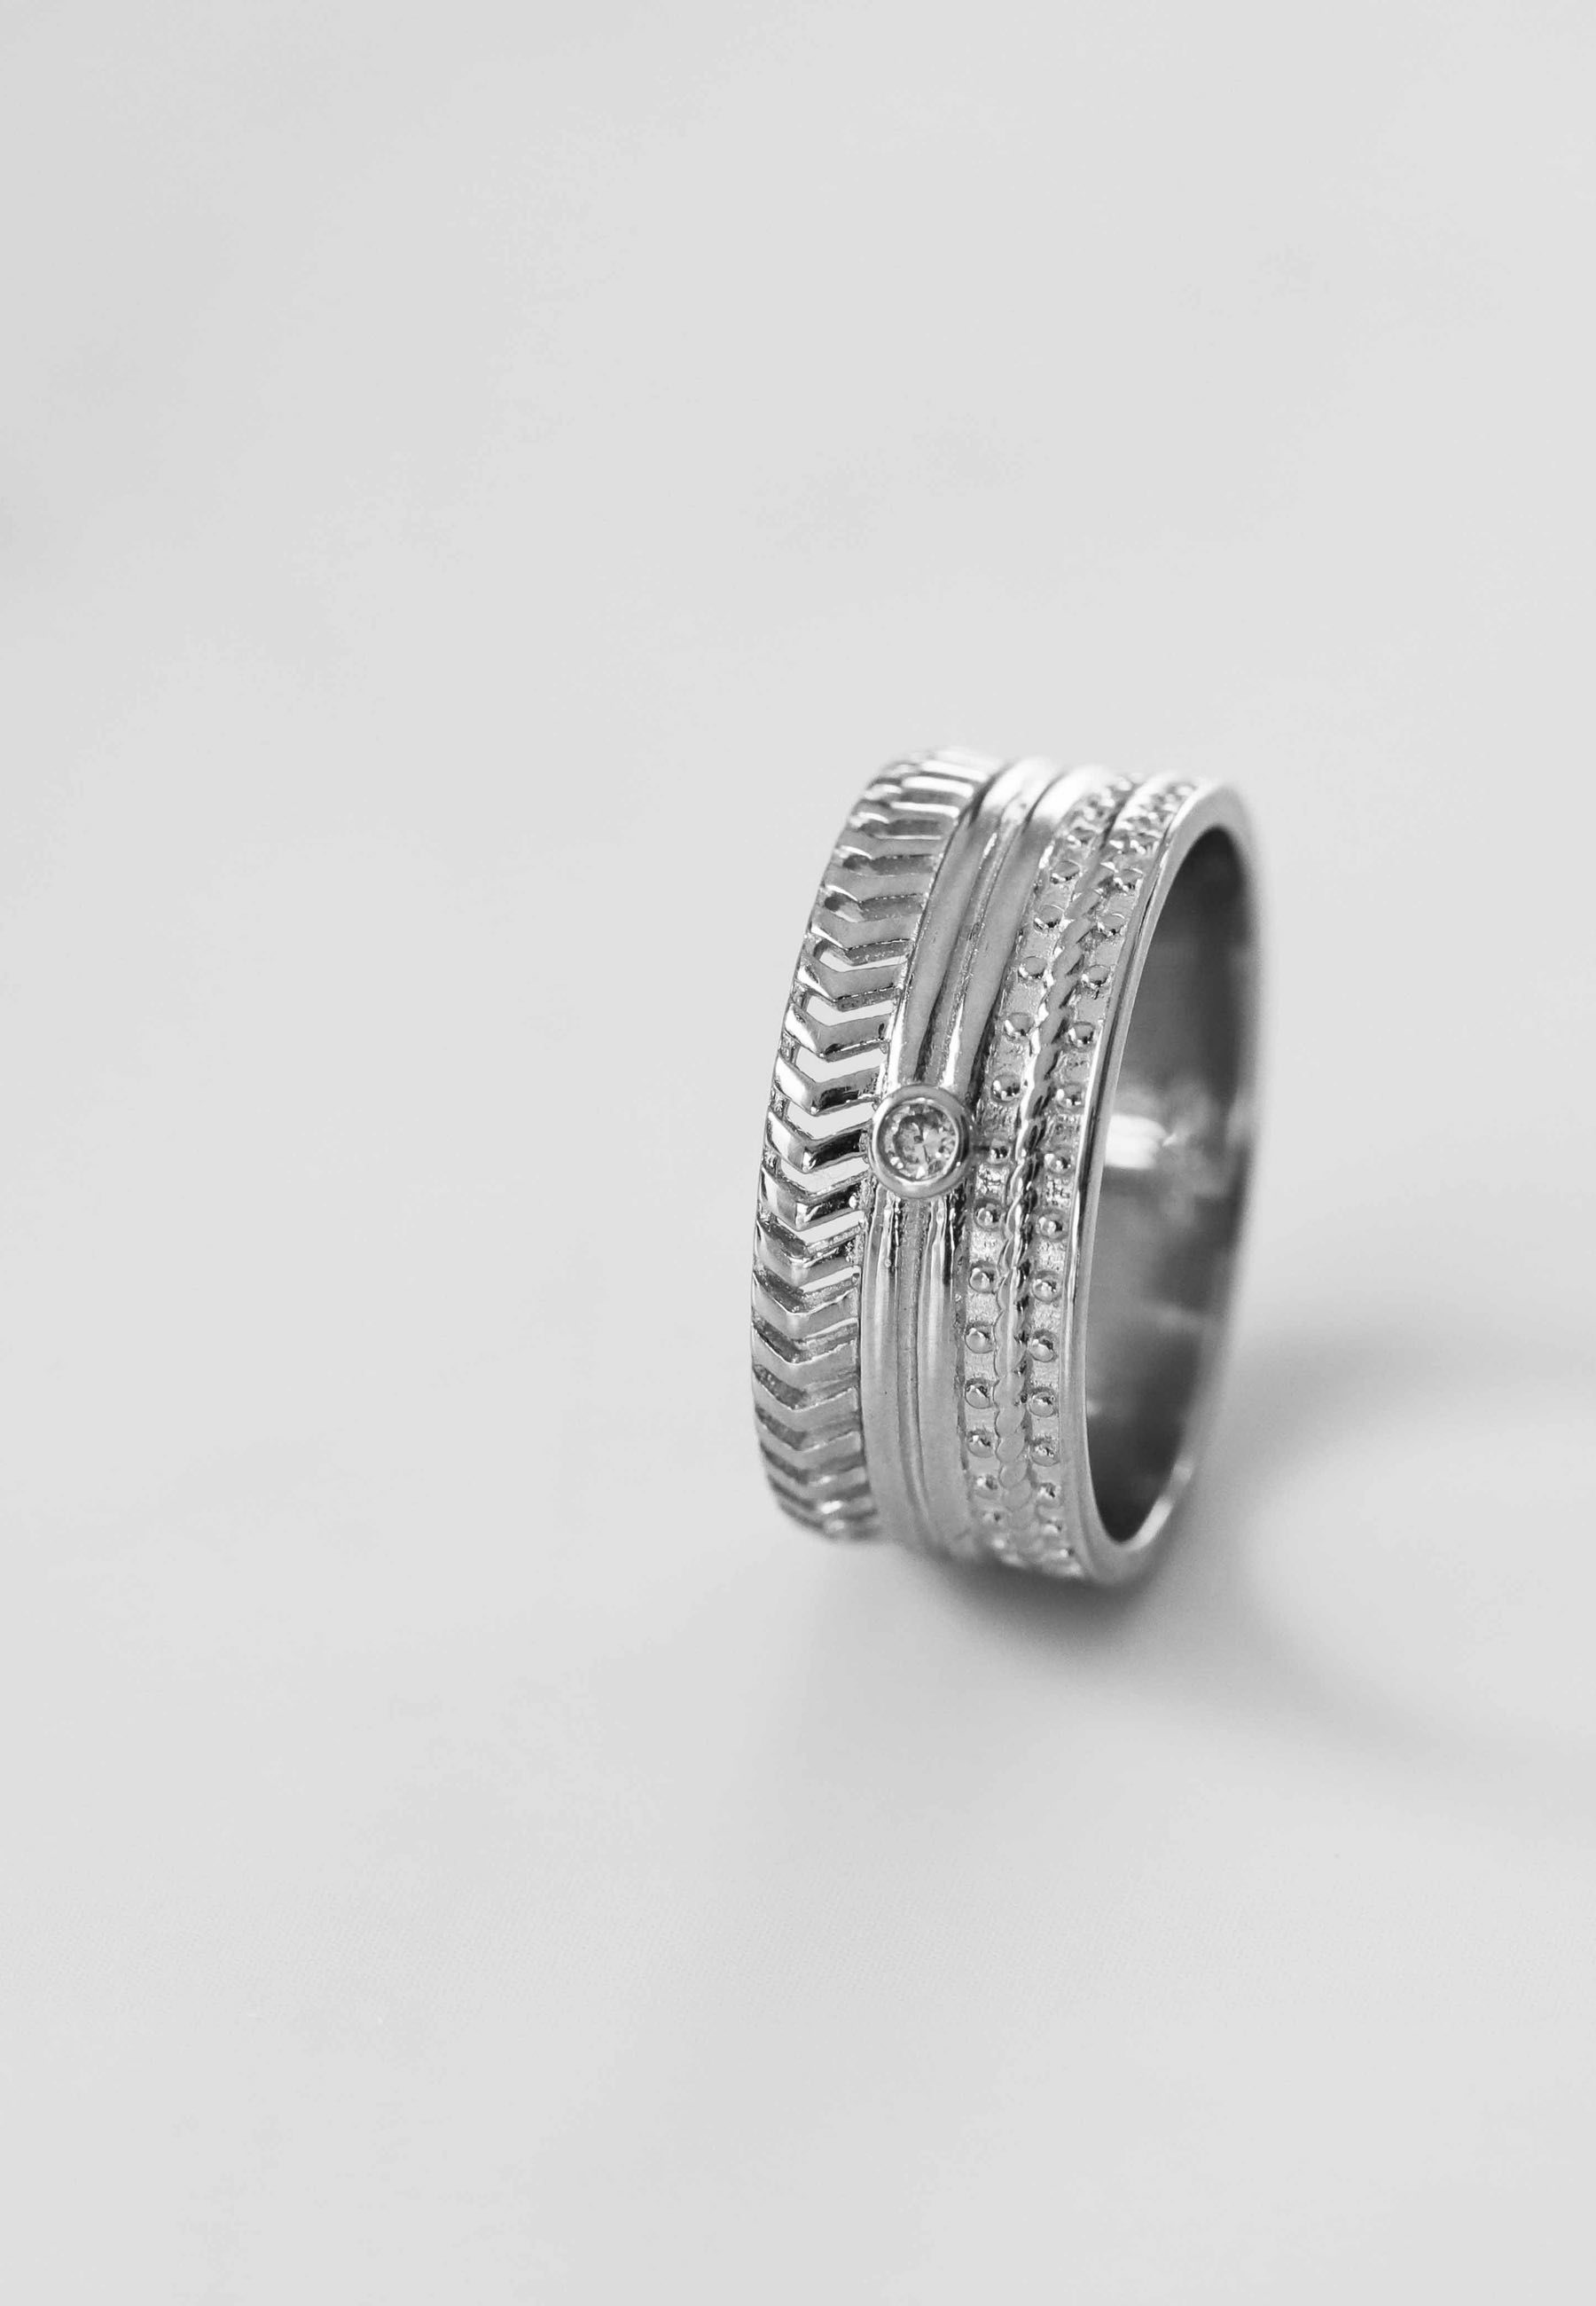 BAROQUE silver ring